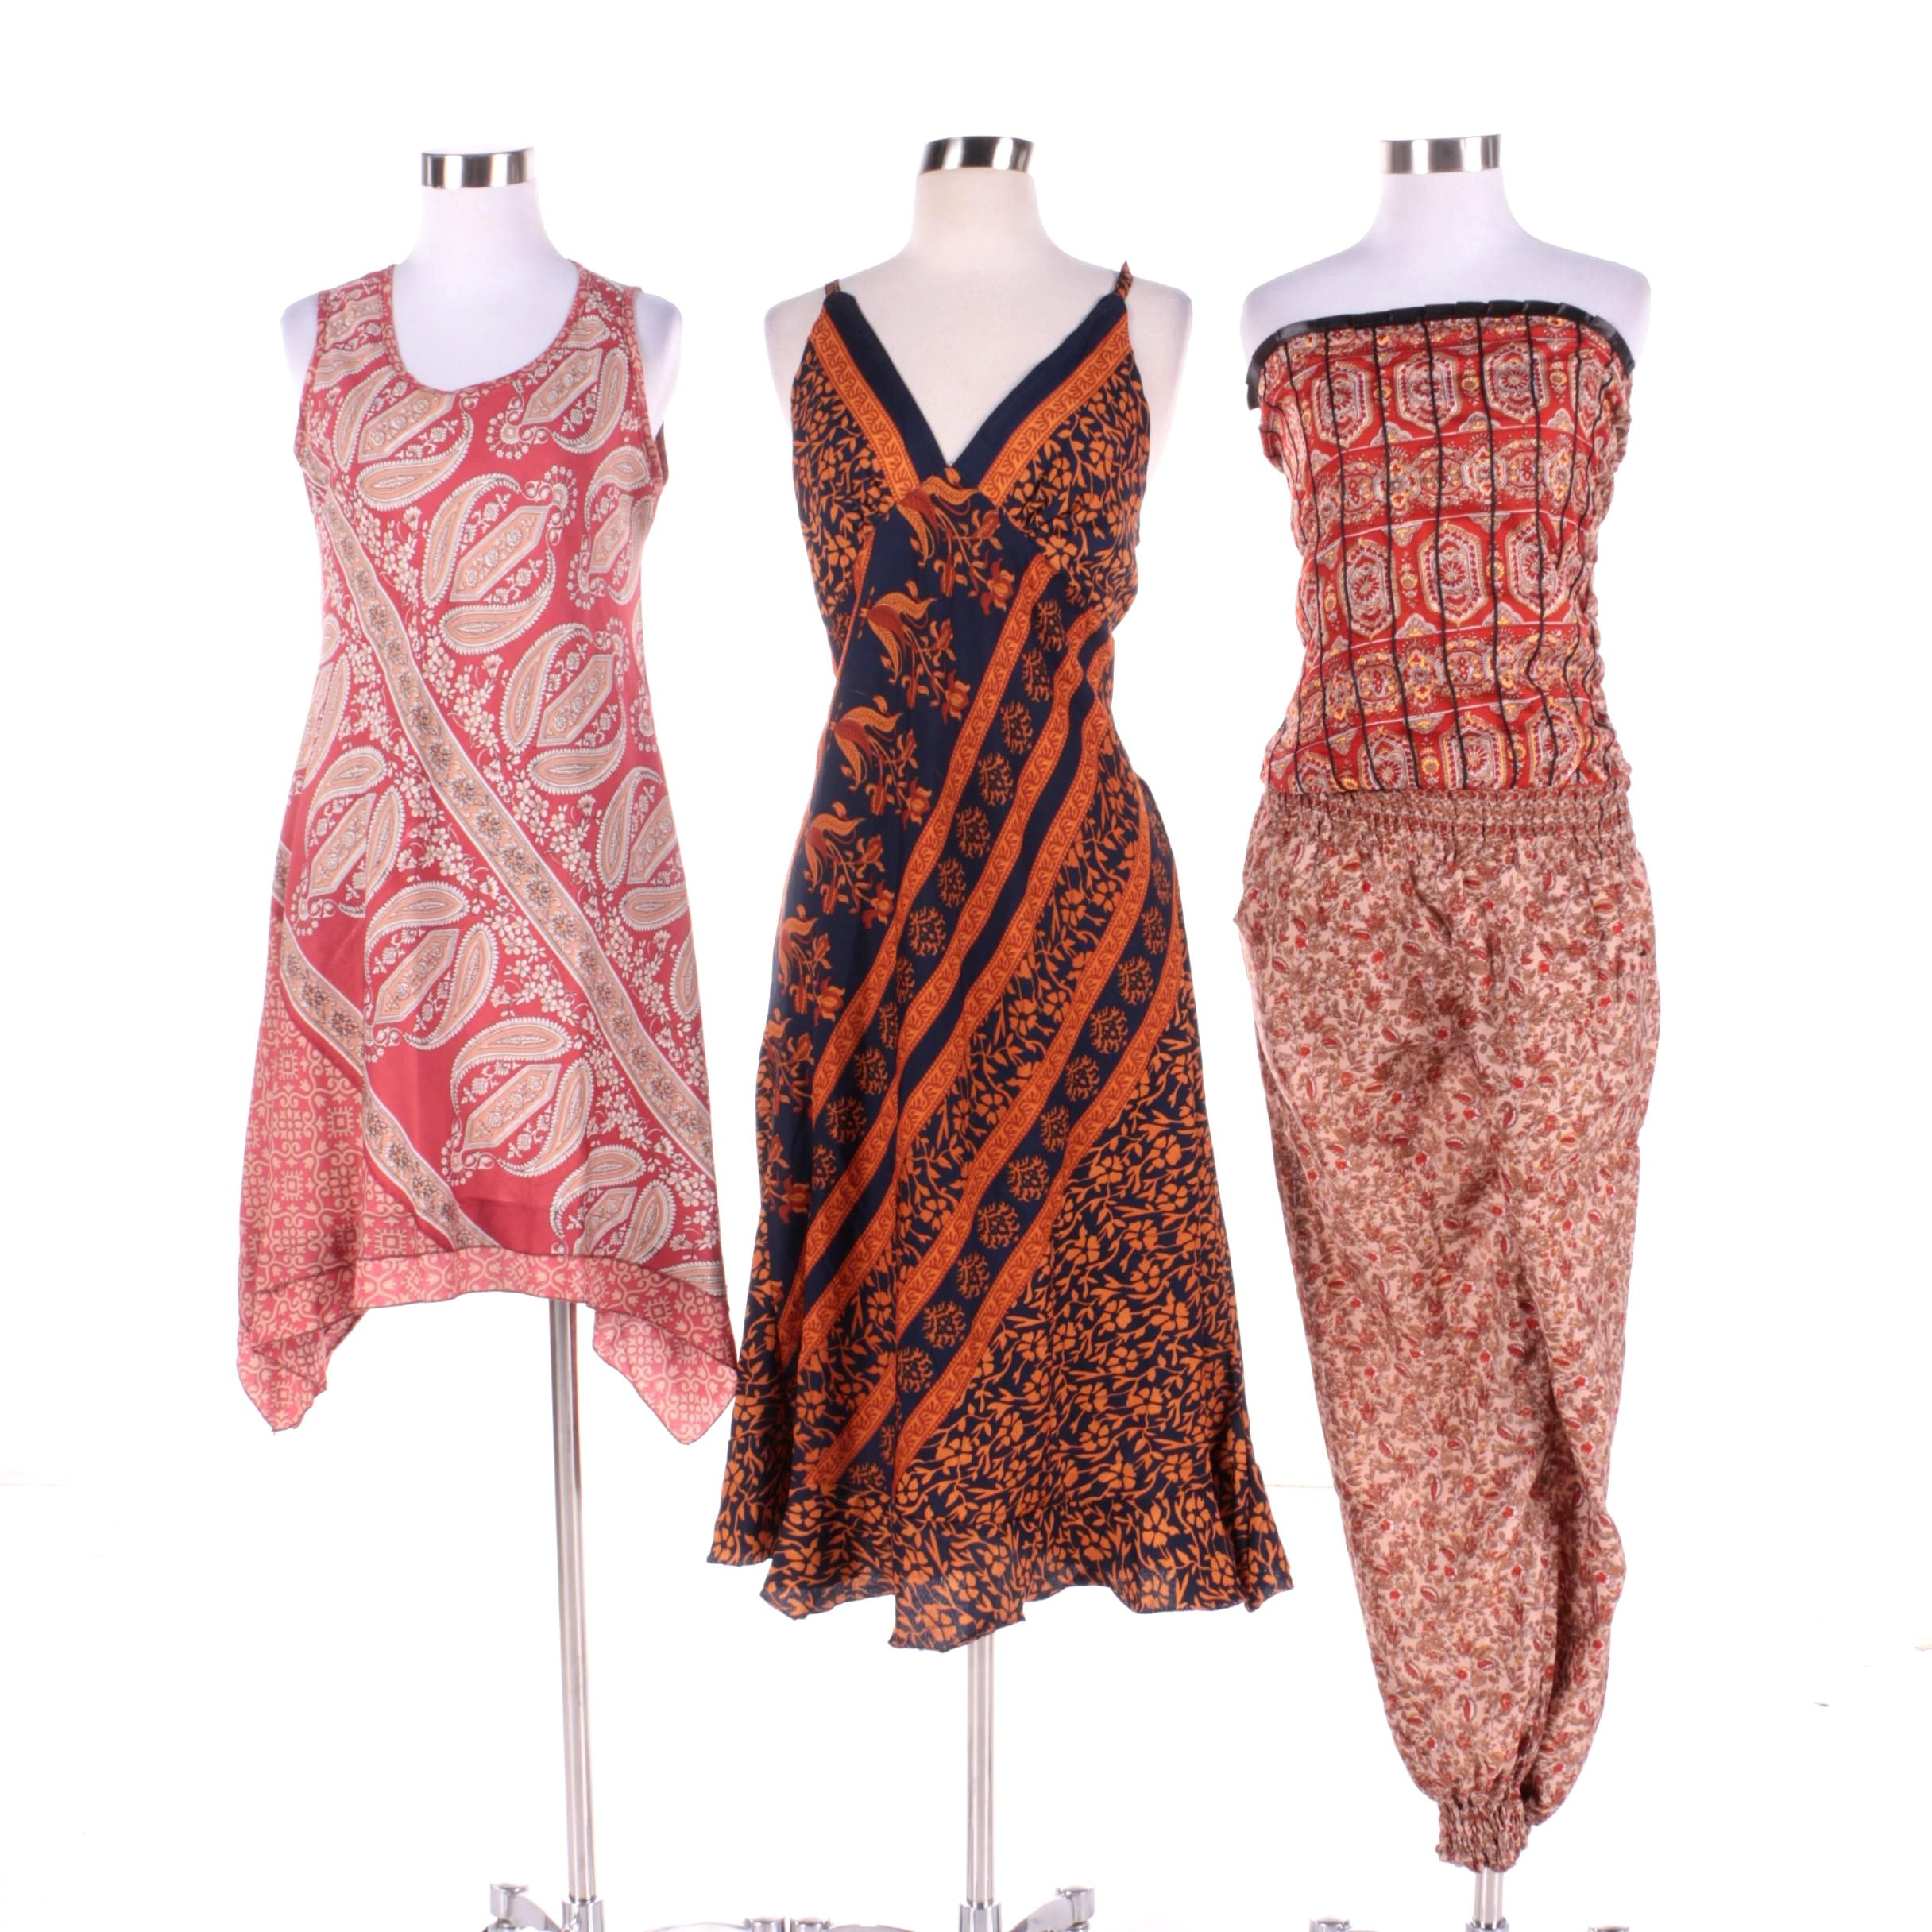 Women's Aller Simplement Dresses and Jumpsuit Made From Upcycled Vintage Saris